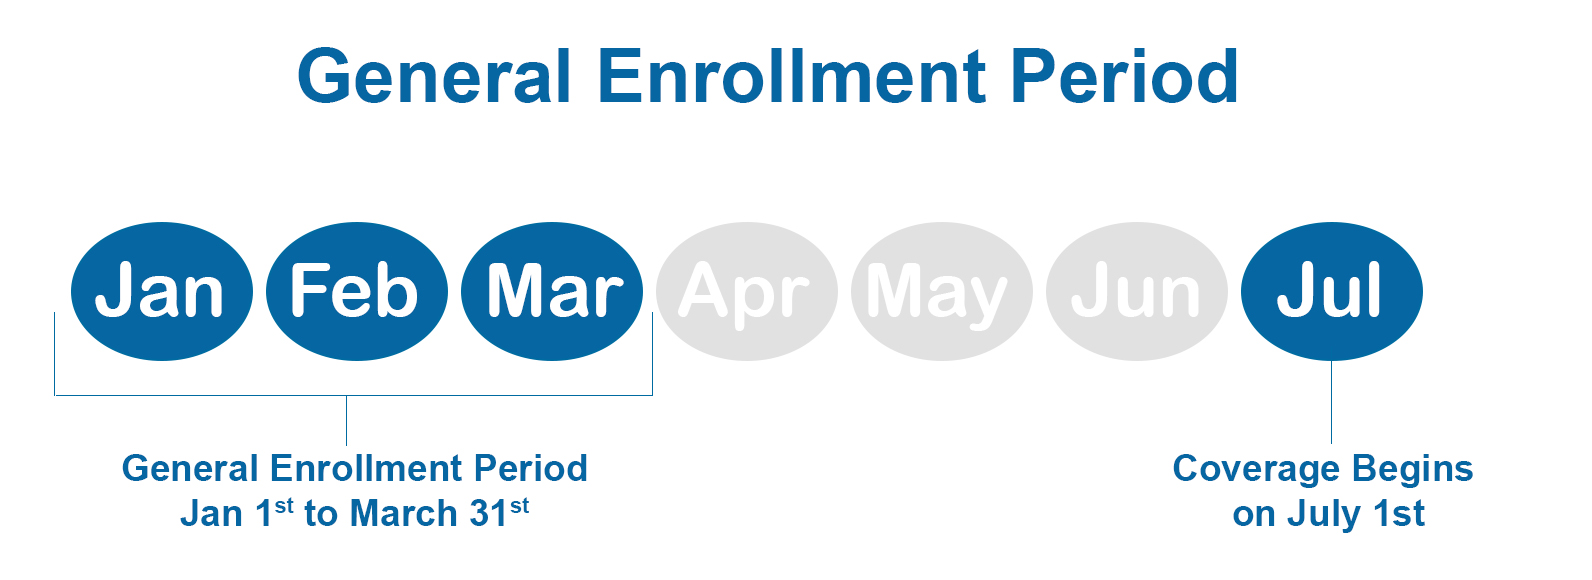 General Enrollment Period